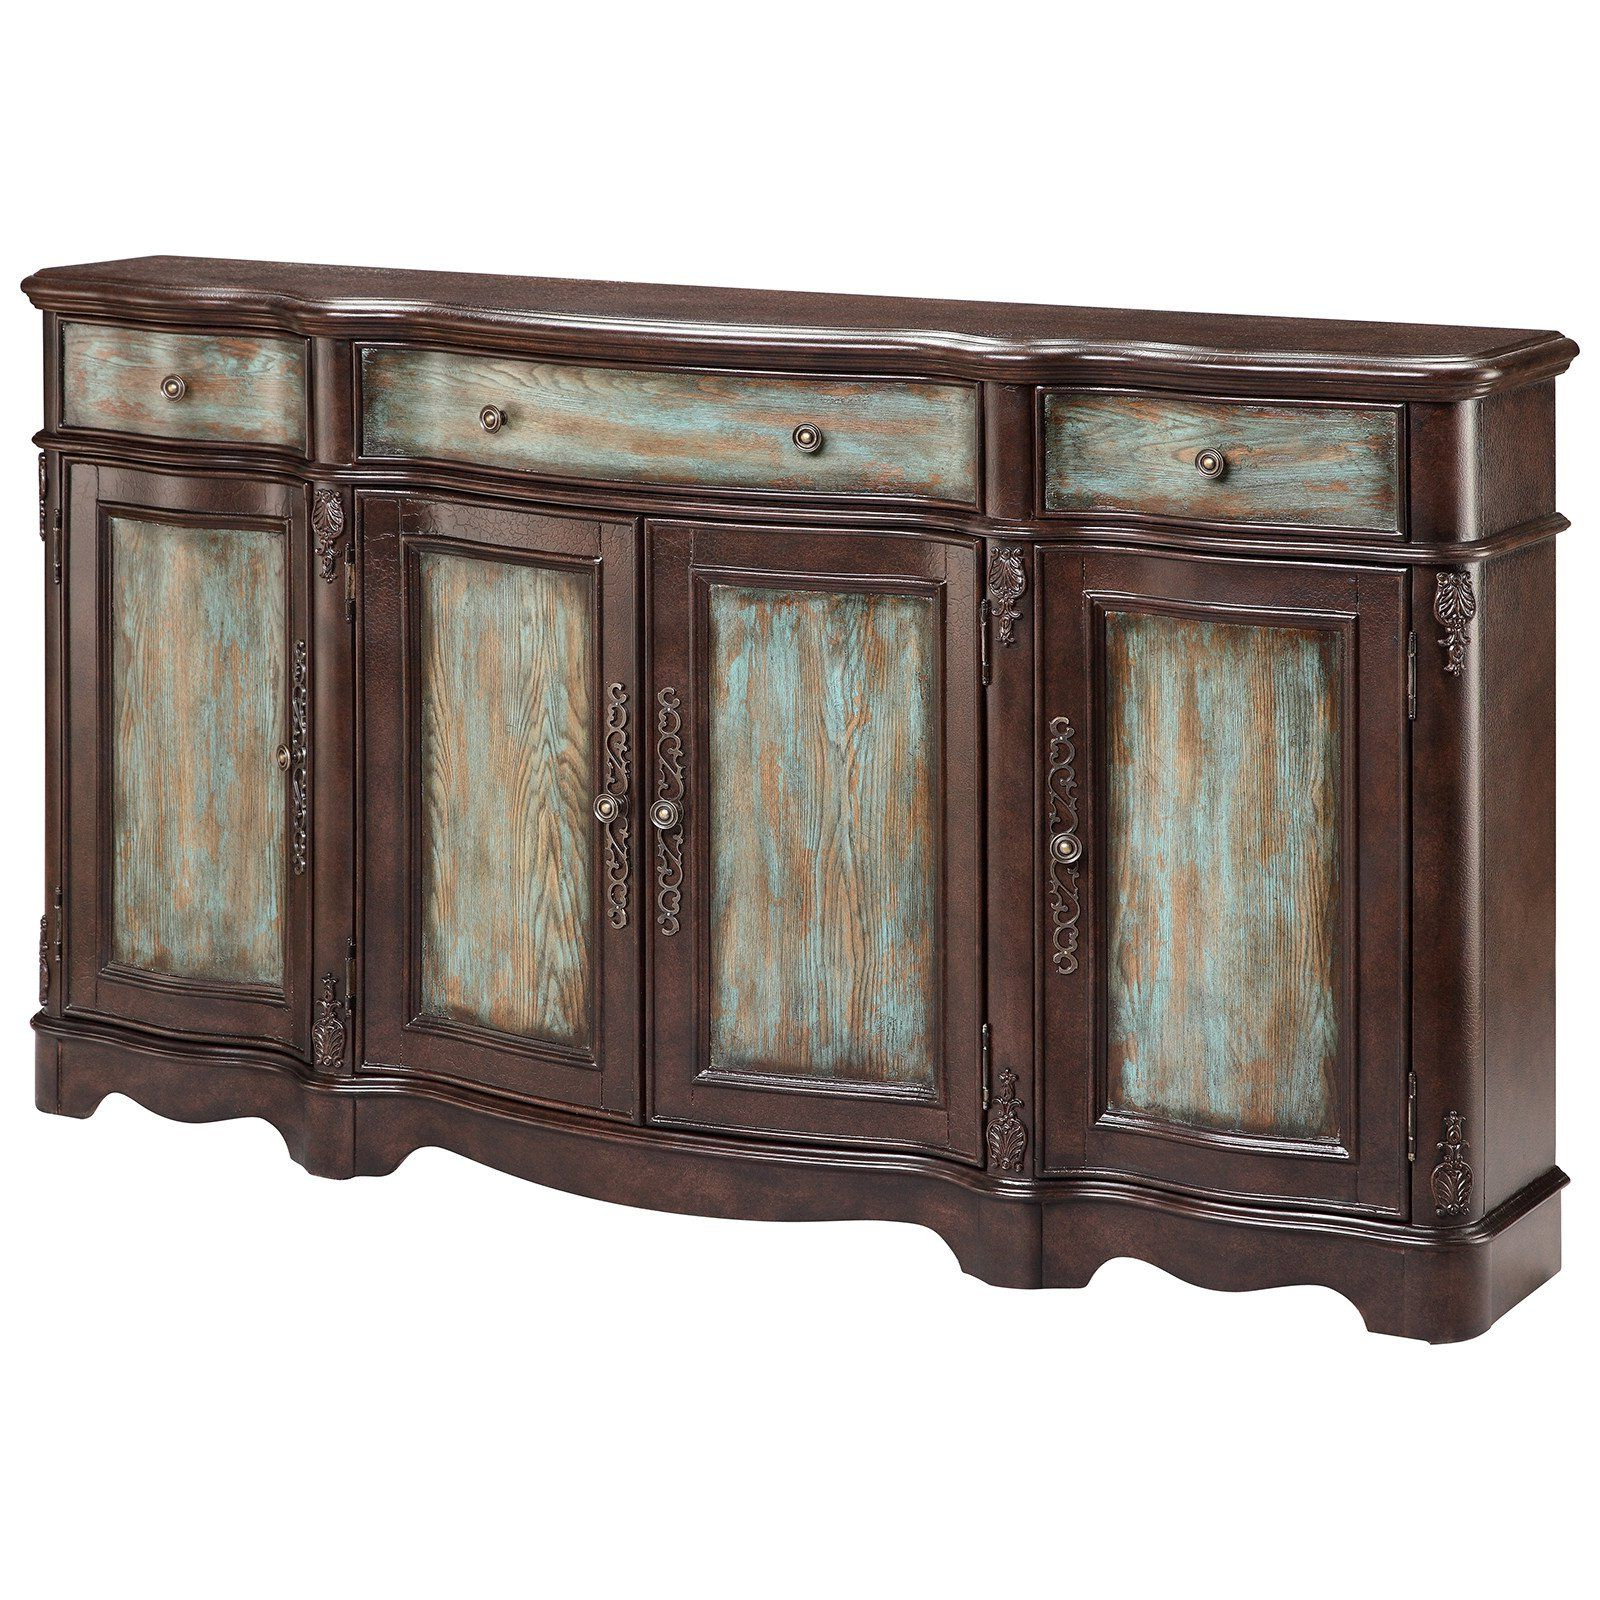 Hewlett Sideboards Within Well Known Lyle 4 Door Sideboard In Brown And Blue (Gallery 4 of 20)